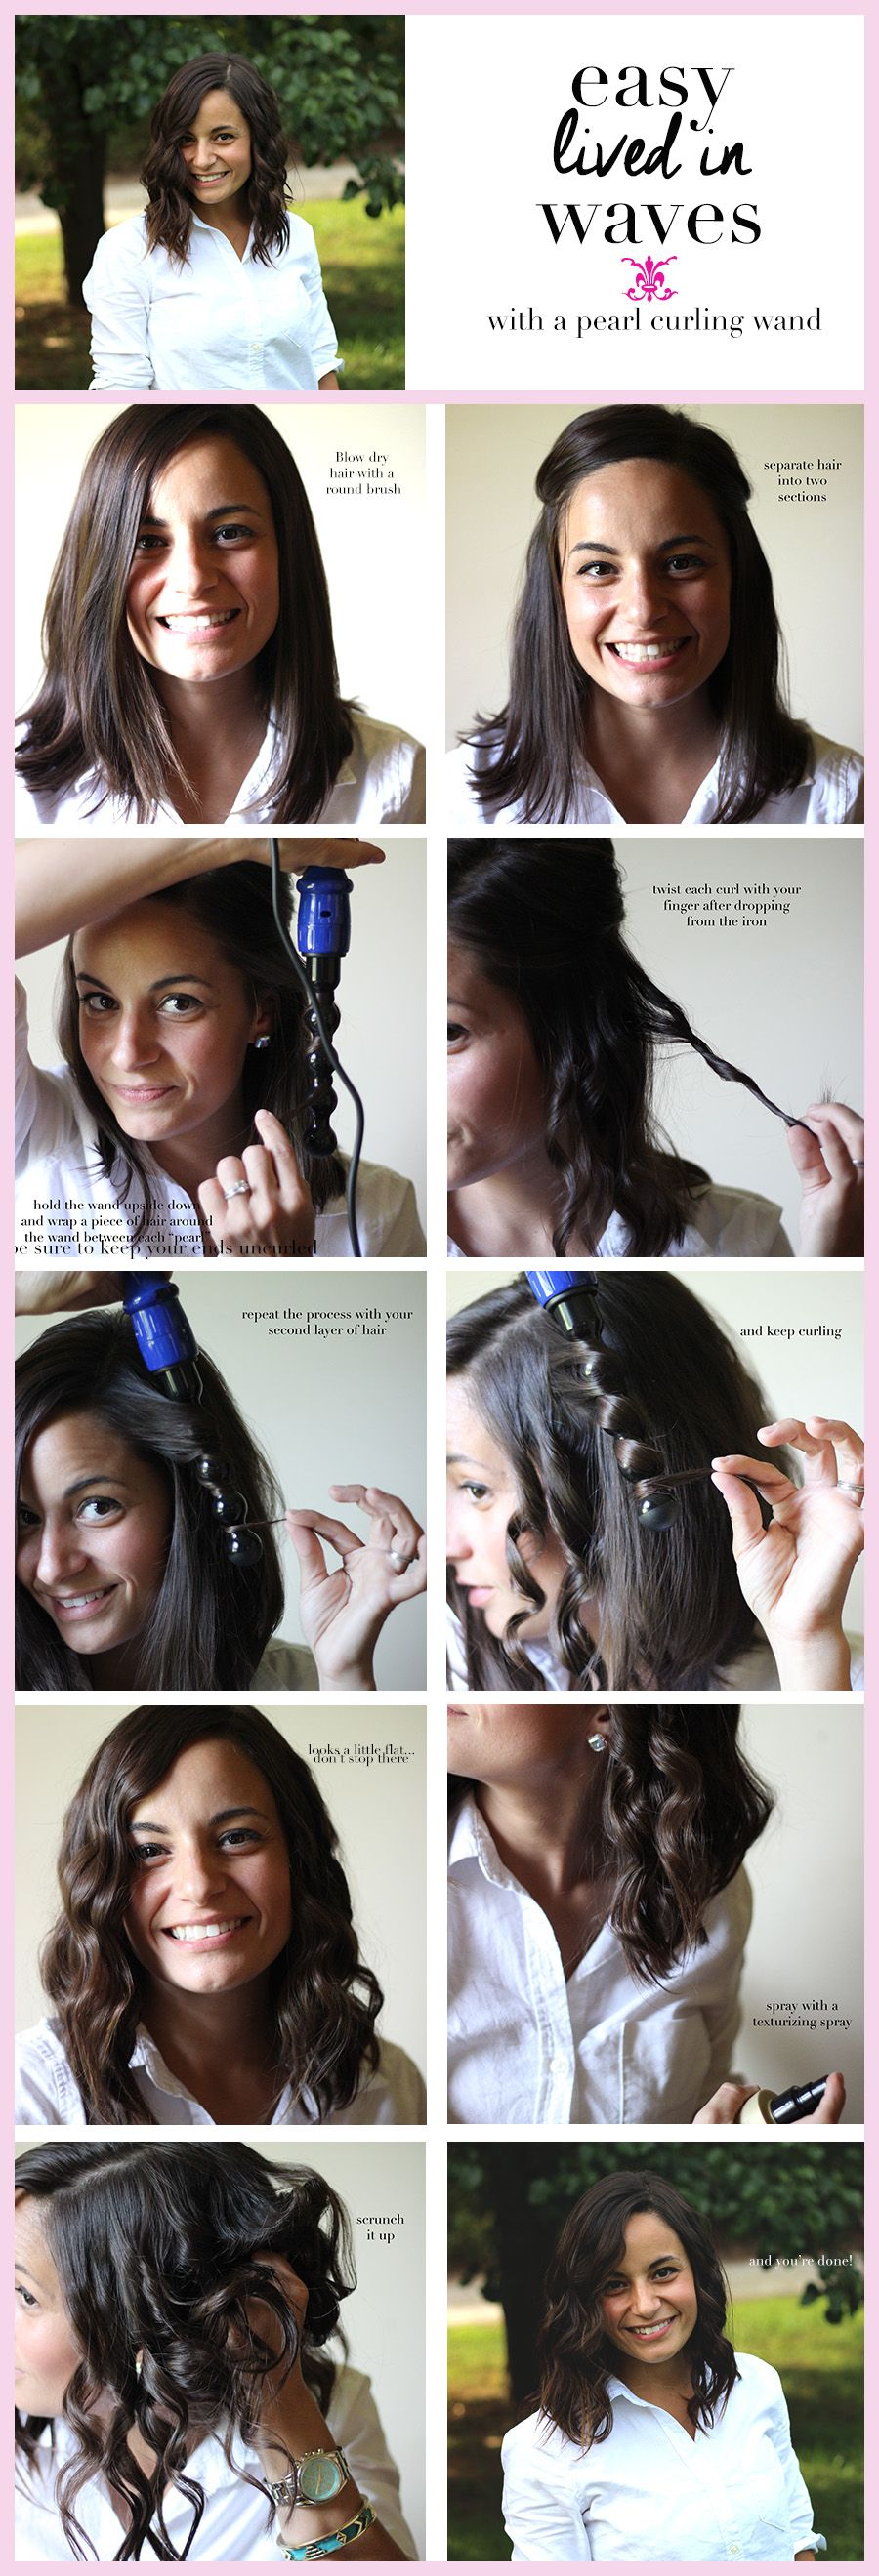 Easy lived in waves how to curl wand and easy hairstyles